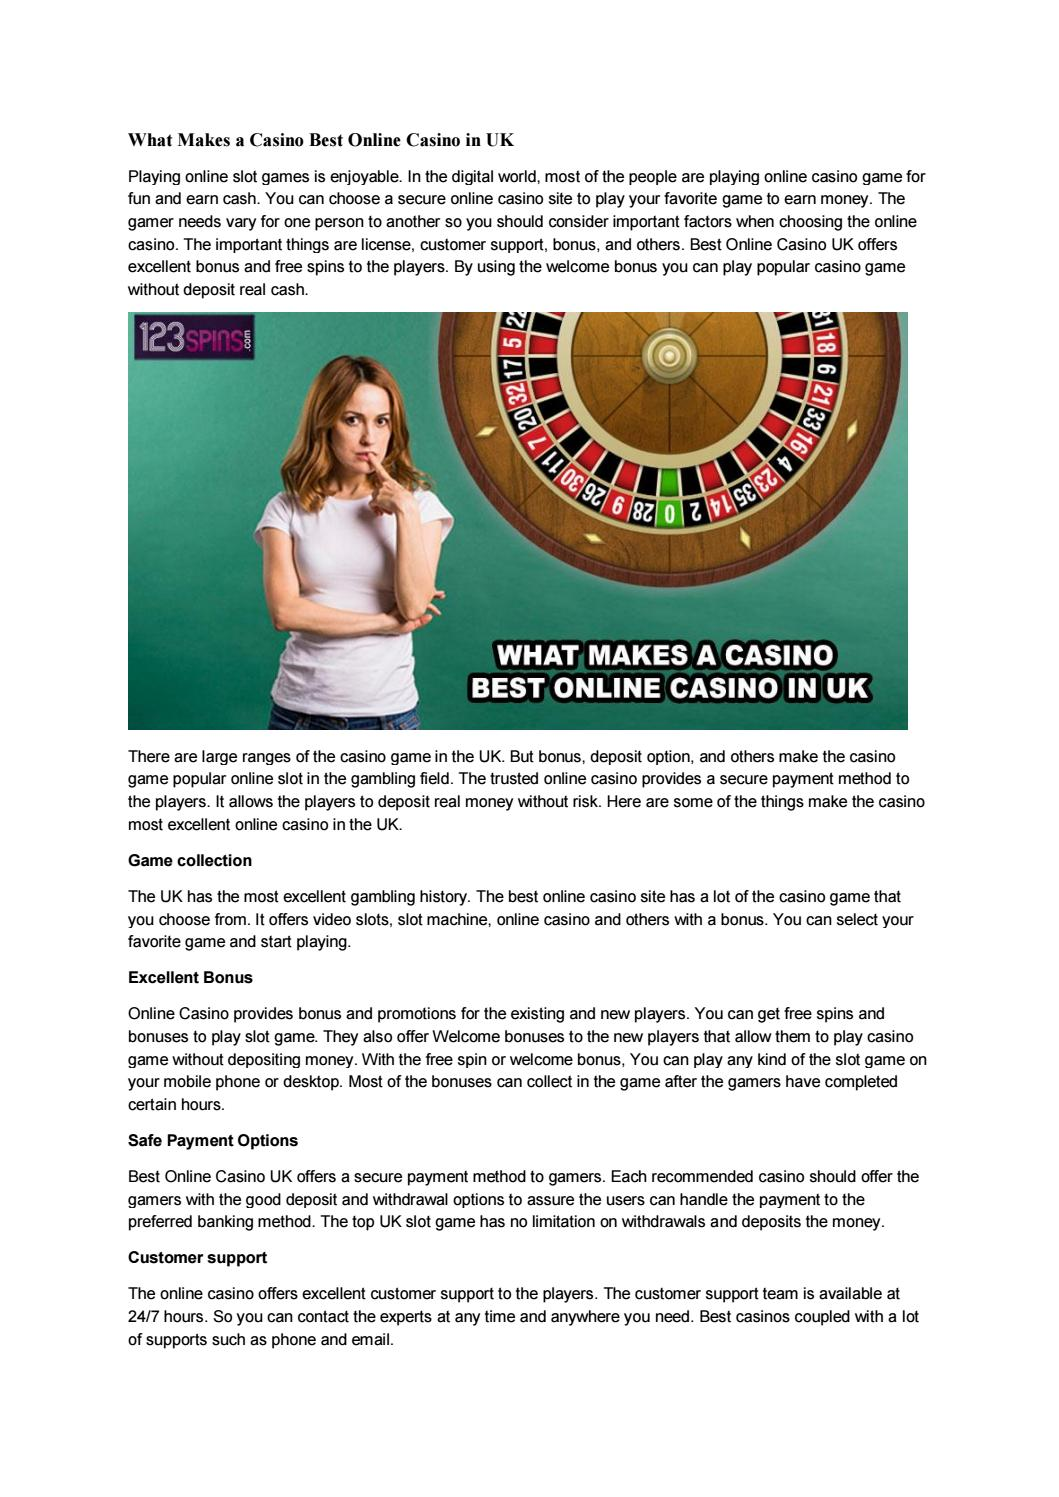 What Makes A Casino Best Online Casino In Uk By 123 Spins Issuu